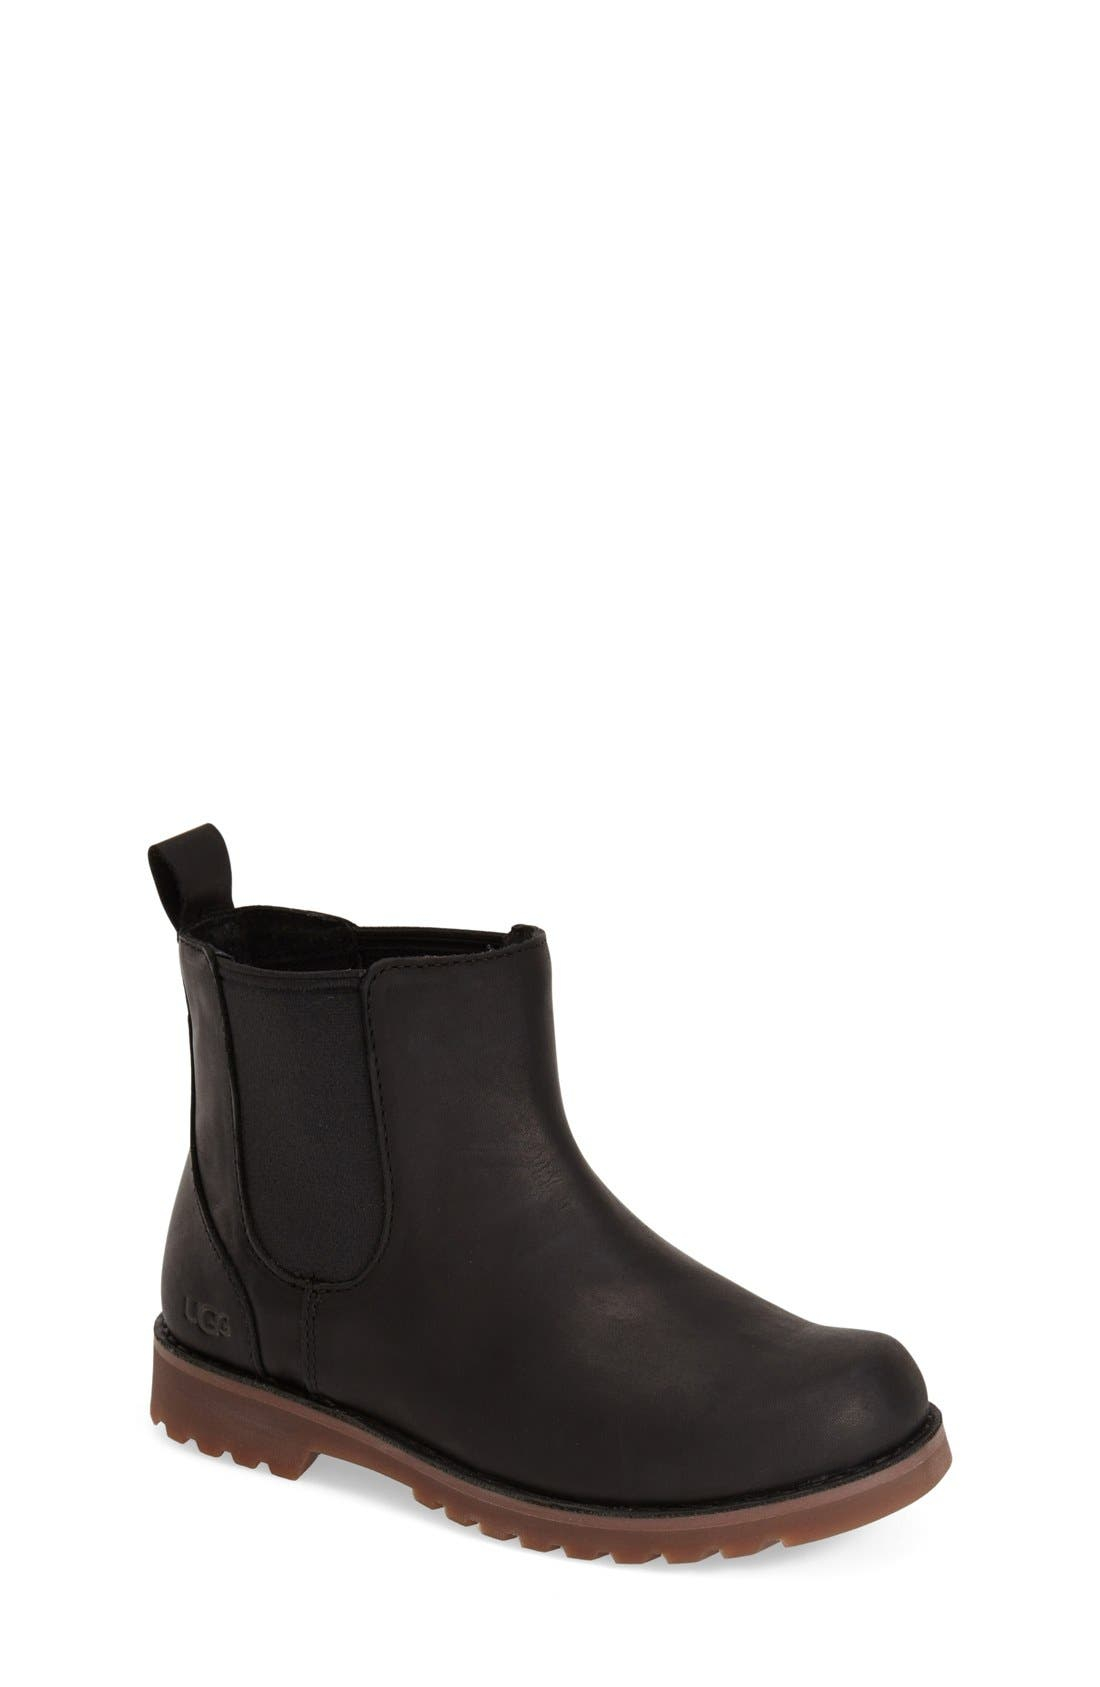 Alternate Image 1 Selected - UGG® Callum Water Resistant Chelsea Boot (Walker, Toddler, Little Kid & Big Kid)